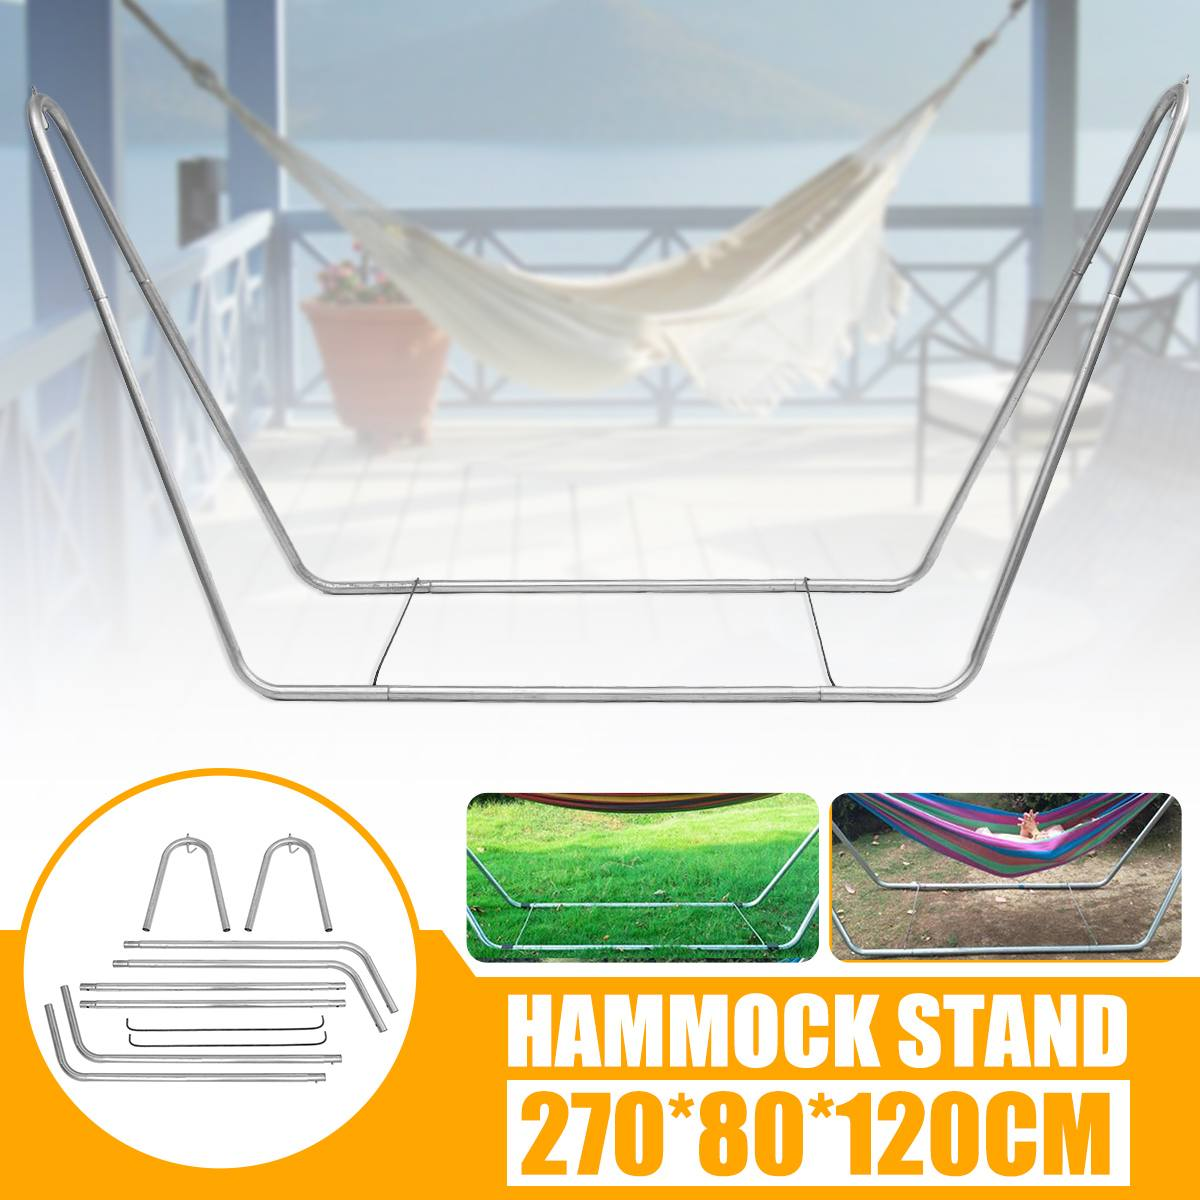 Us 139 0 50 Off Outdoor Patio Hammock Swing Chair Bed Metal Frame Stand Portable Large Garden Camping Indoor Hammock Stand Only 270 80 120cm On